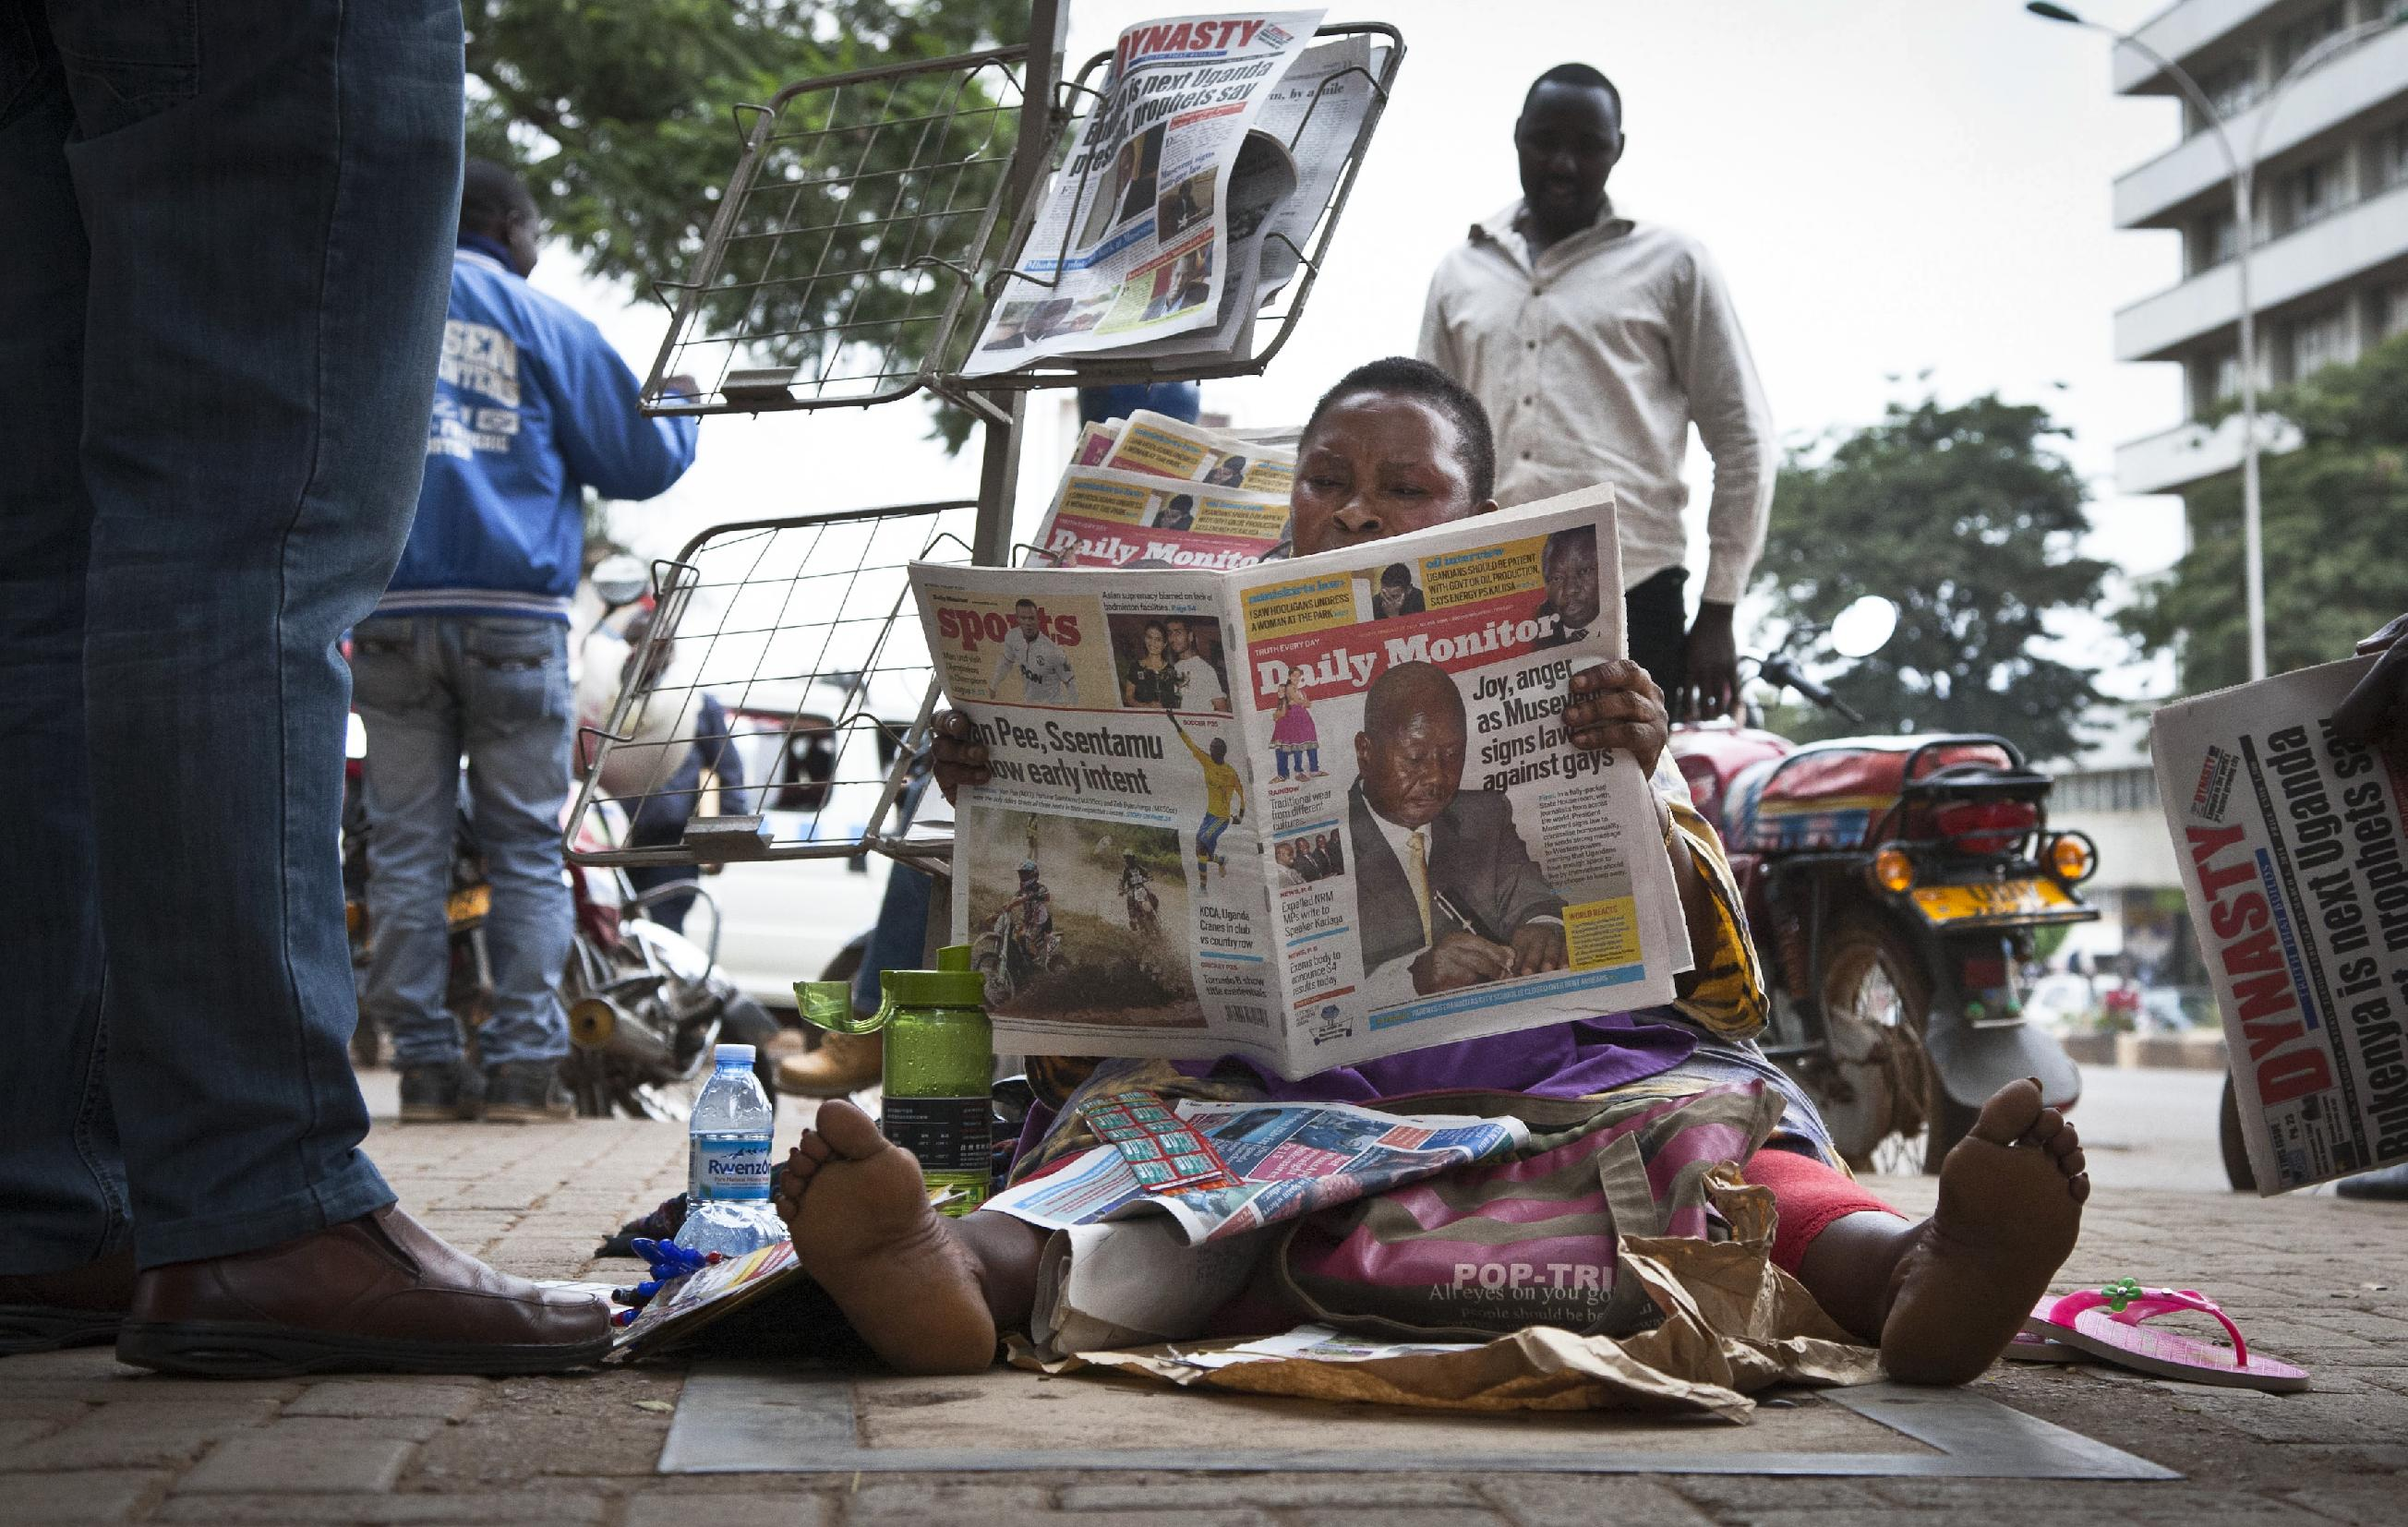 """A Ugandan newspaper seller reads a copy of the """"Daily Monitor"""" newspaper on the street in Kampala, Uganda Tuesday, Feb. 25, 2014. The Ugandan """"Red Pepper"""" tabloid newspaper published a list Tuesday of what it called the country's """"200 top"""" homosexuals, outing some Ugandans who previously had not identified themselves as gay, one day after the president Yoweri Museveni enacted a harsh anti-gay law. (AP Photo/Rebecca Vassie)"""